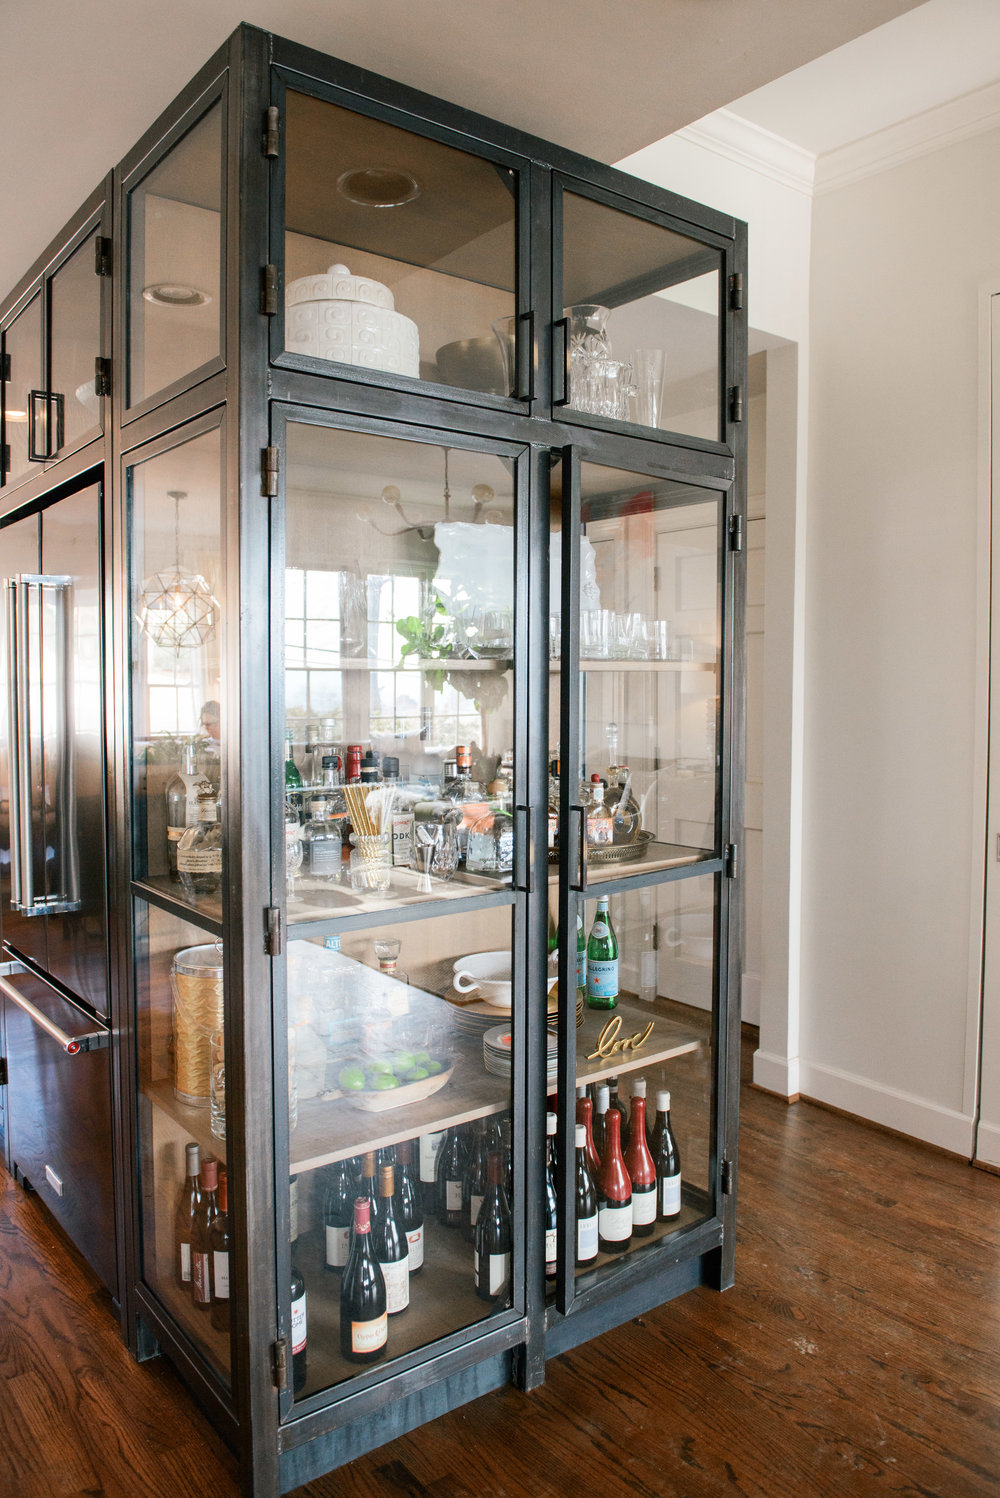 Steel and wood cabinet designed by Katrina Porter Designs. Photo by Paula Coldiron.